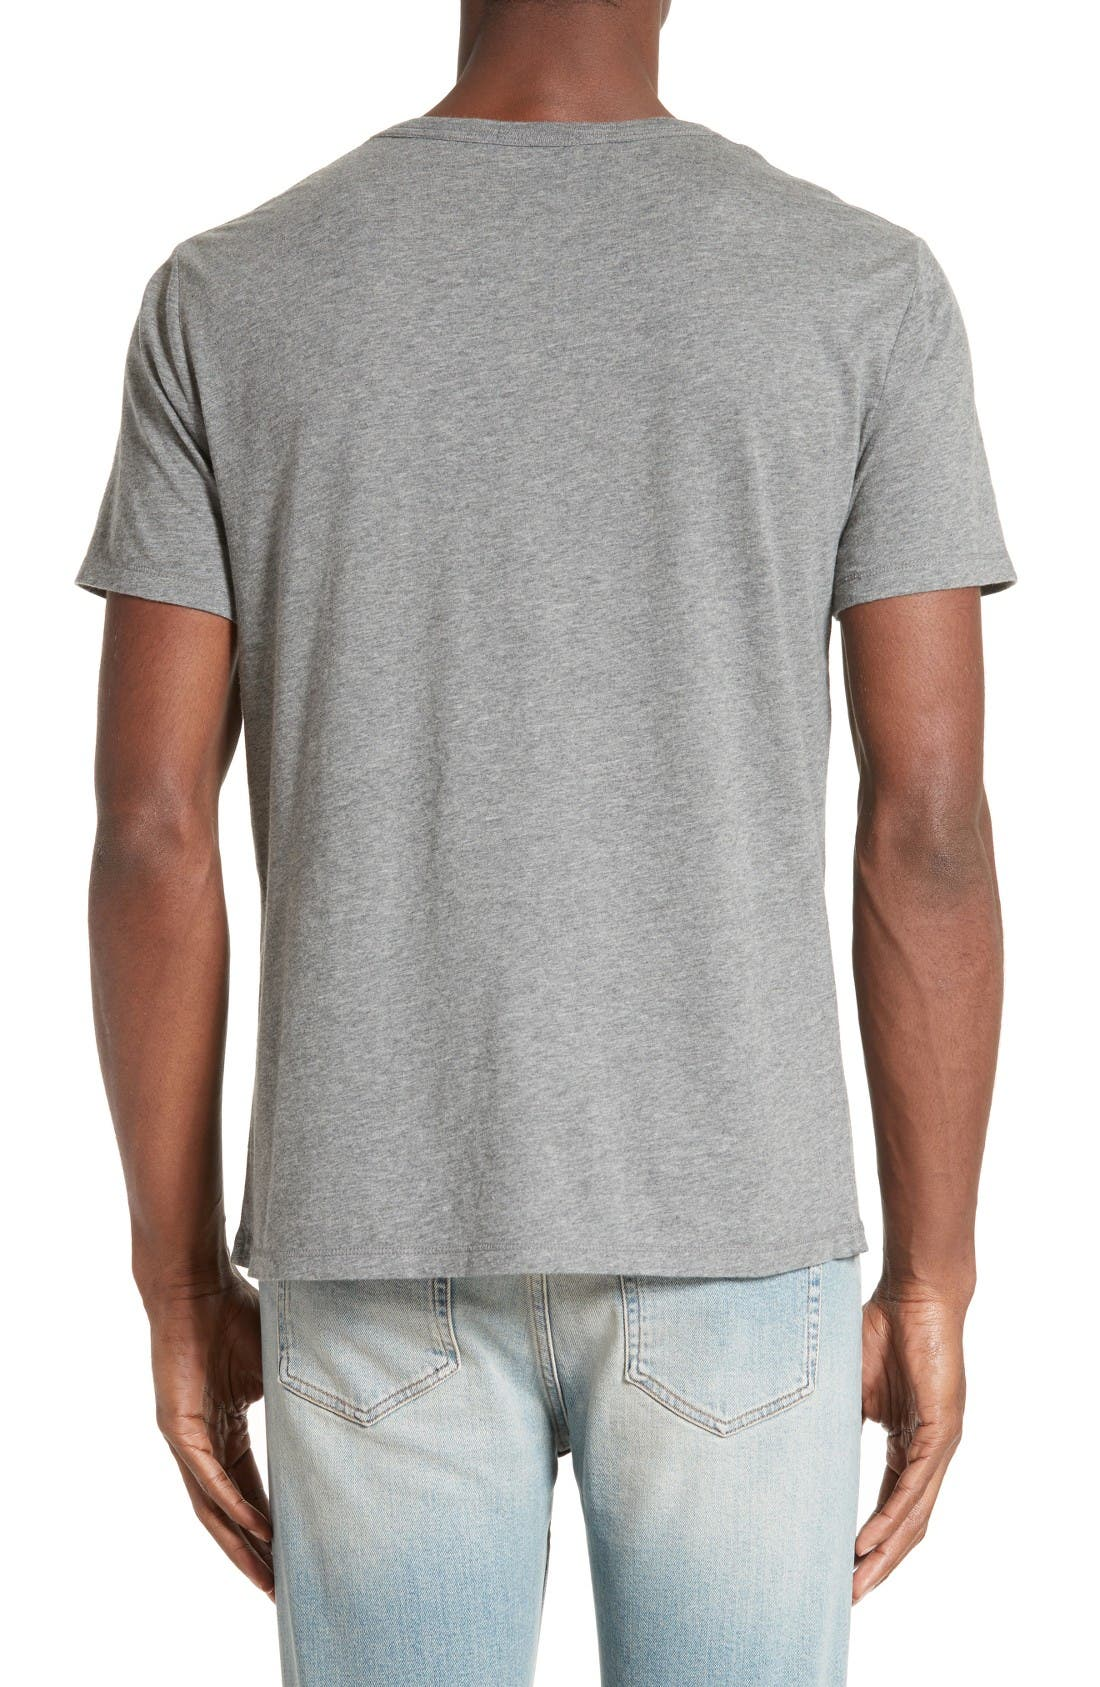 Alternate Image 2  - T by Alexander Wang 'Classic' T-Shirt